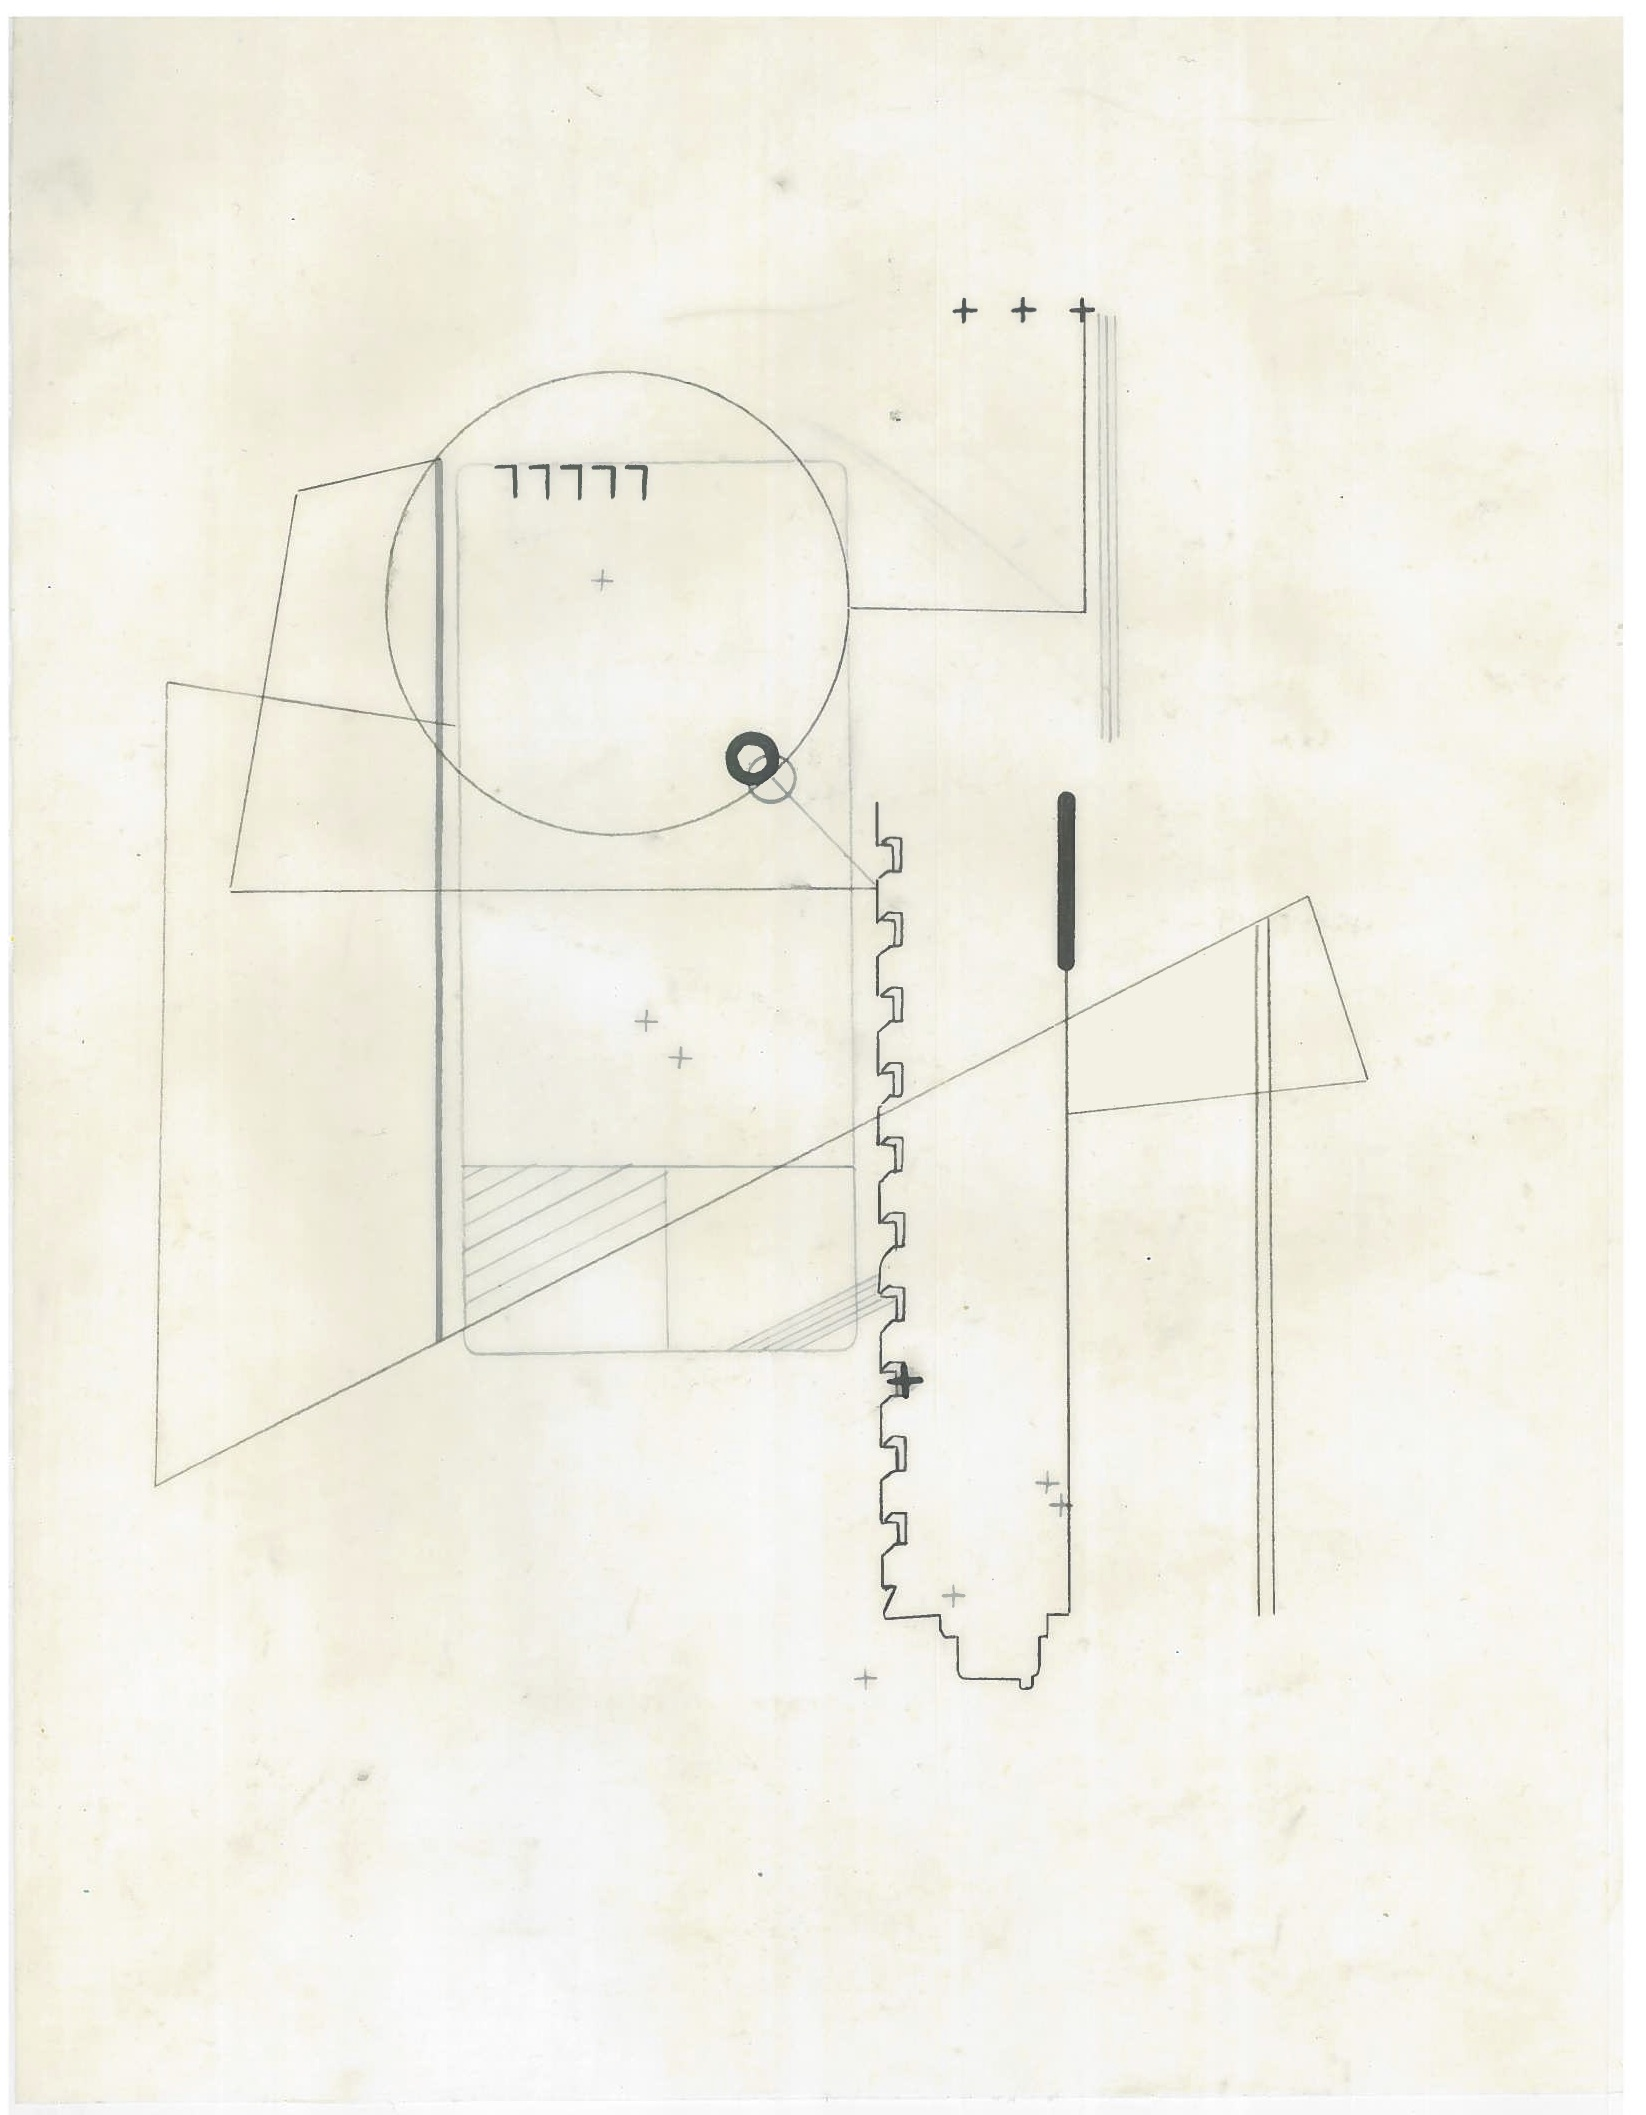 Untitled (the city, observations 22B)  Pencil on oiled fabriano paper  279mm x 216mm  December 2013